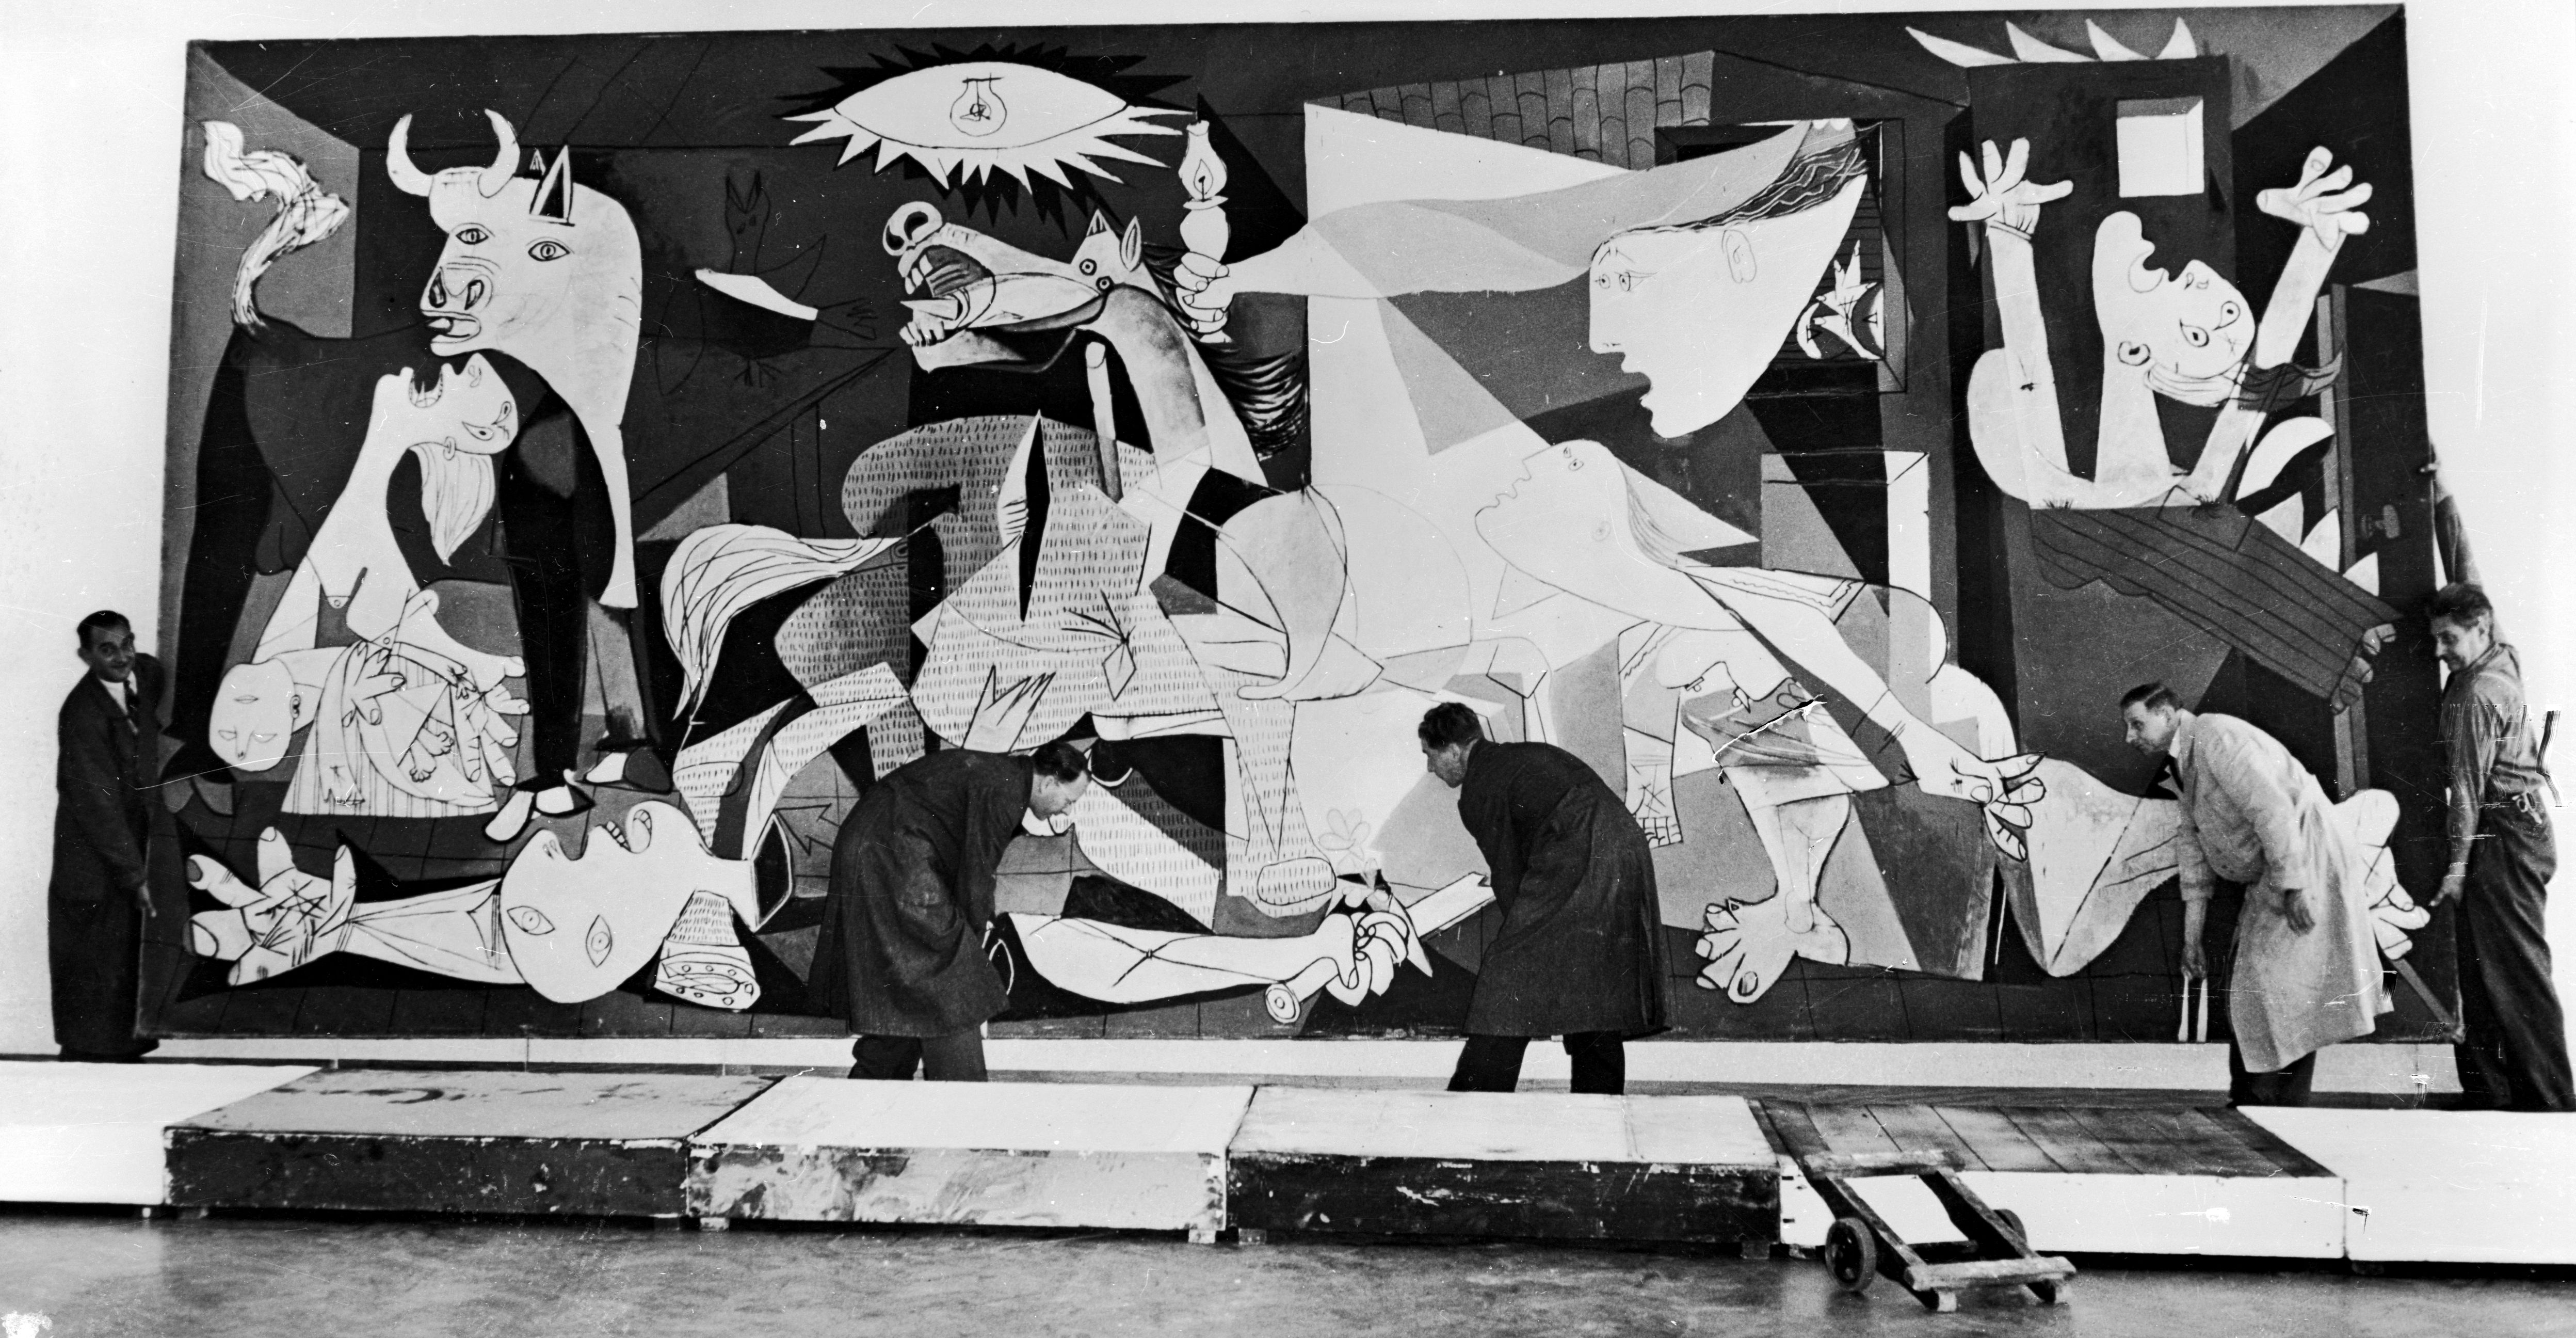 picasso 39 s guernica painting. Black Bedroom Furniture Sets. Home Design Ideas